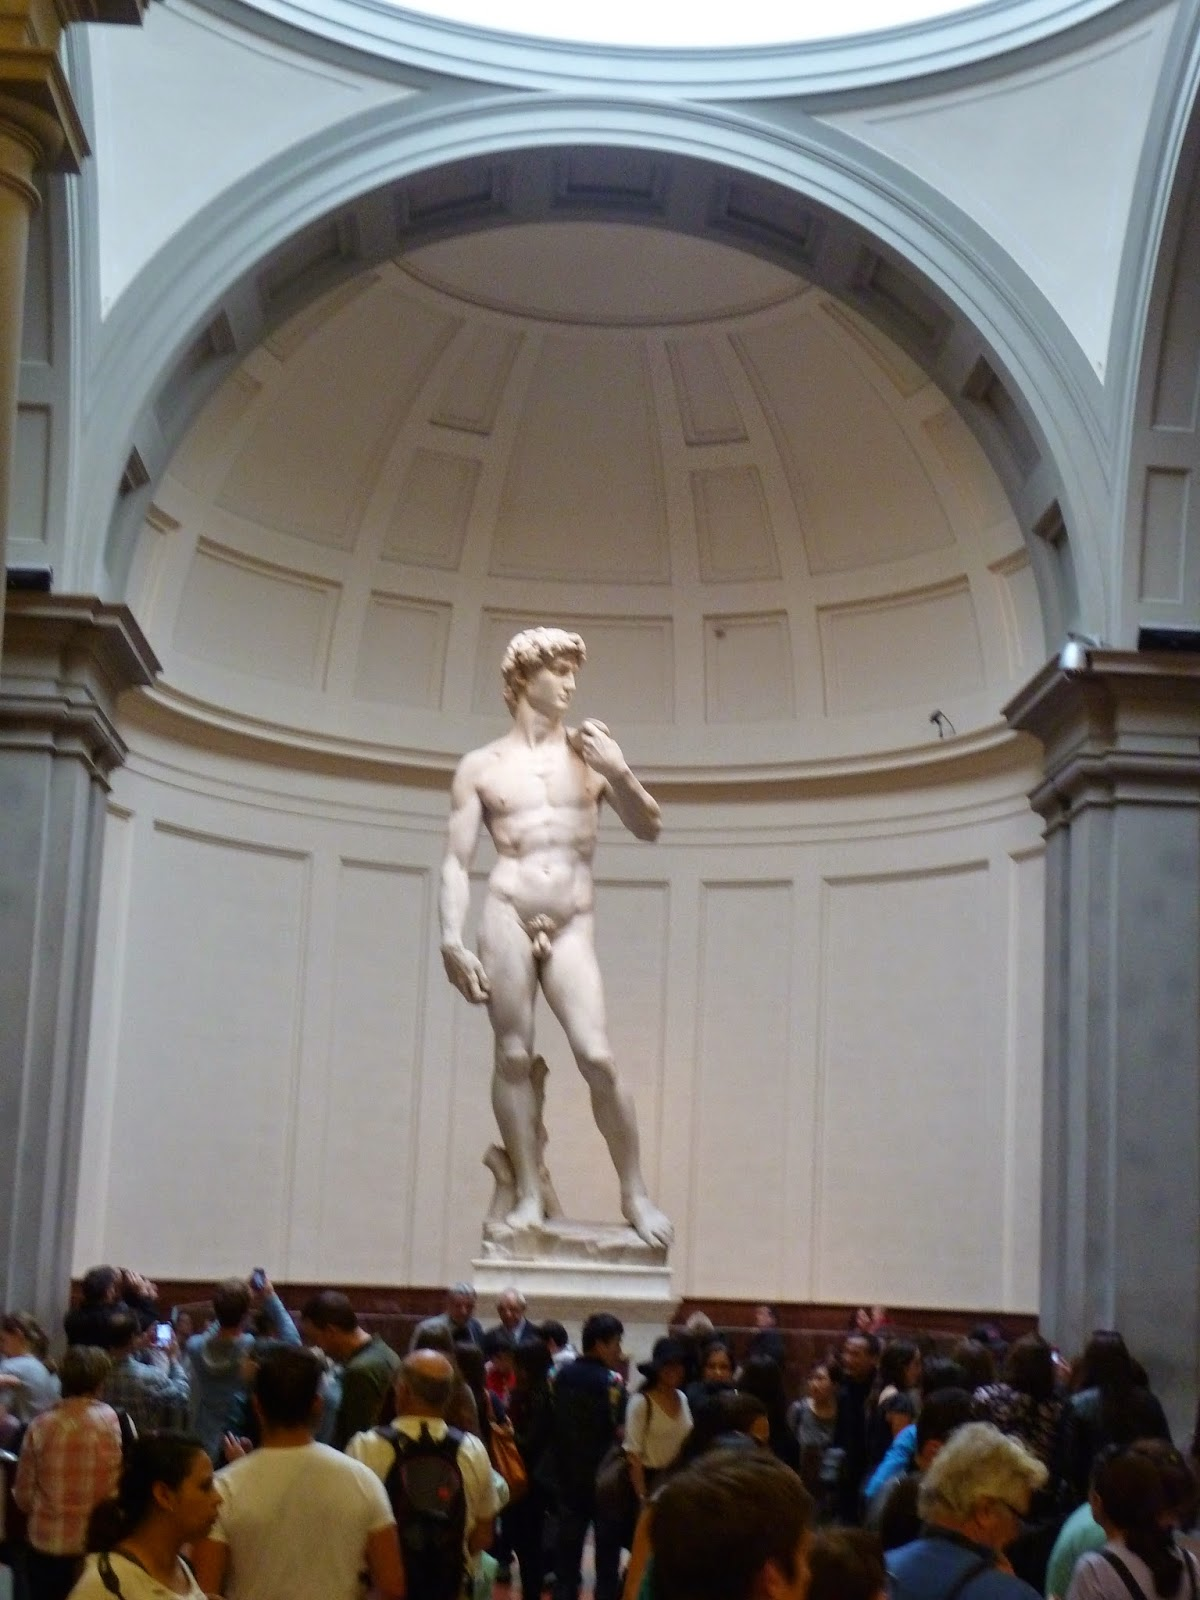 Florence At The Accademia Museum Which Has A 17 Foot High Statue Of David Goliath Fame By Michelangelo Even With Crowds Gathering Around His Feet